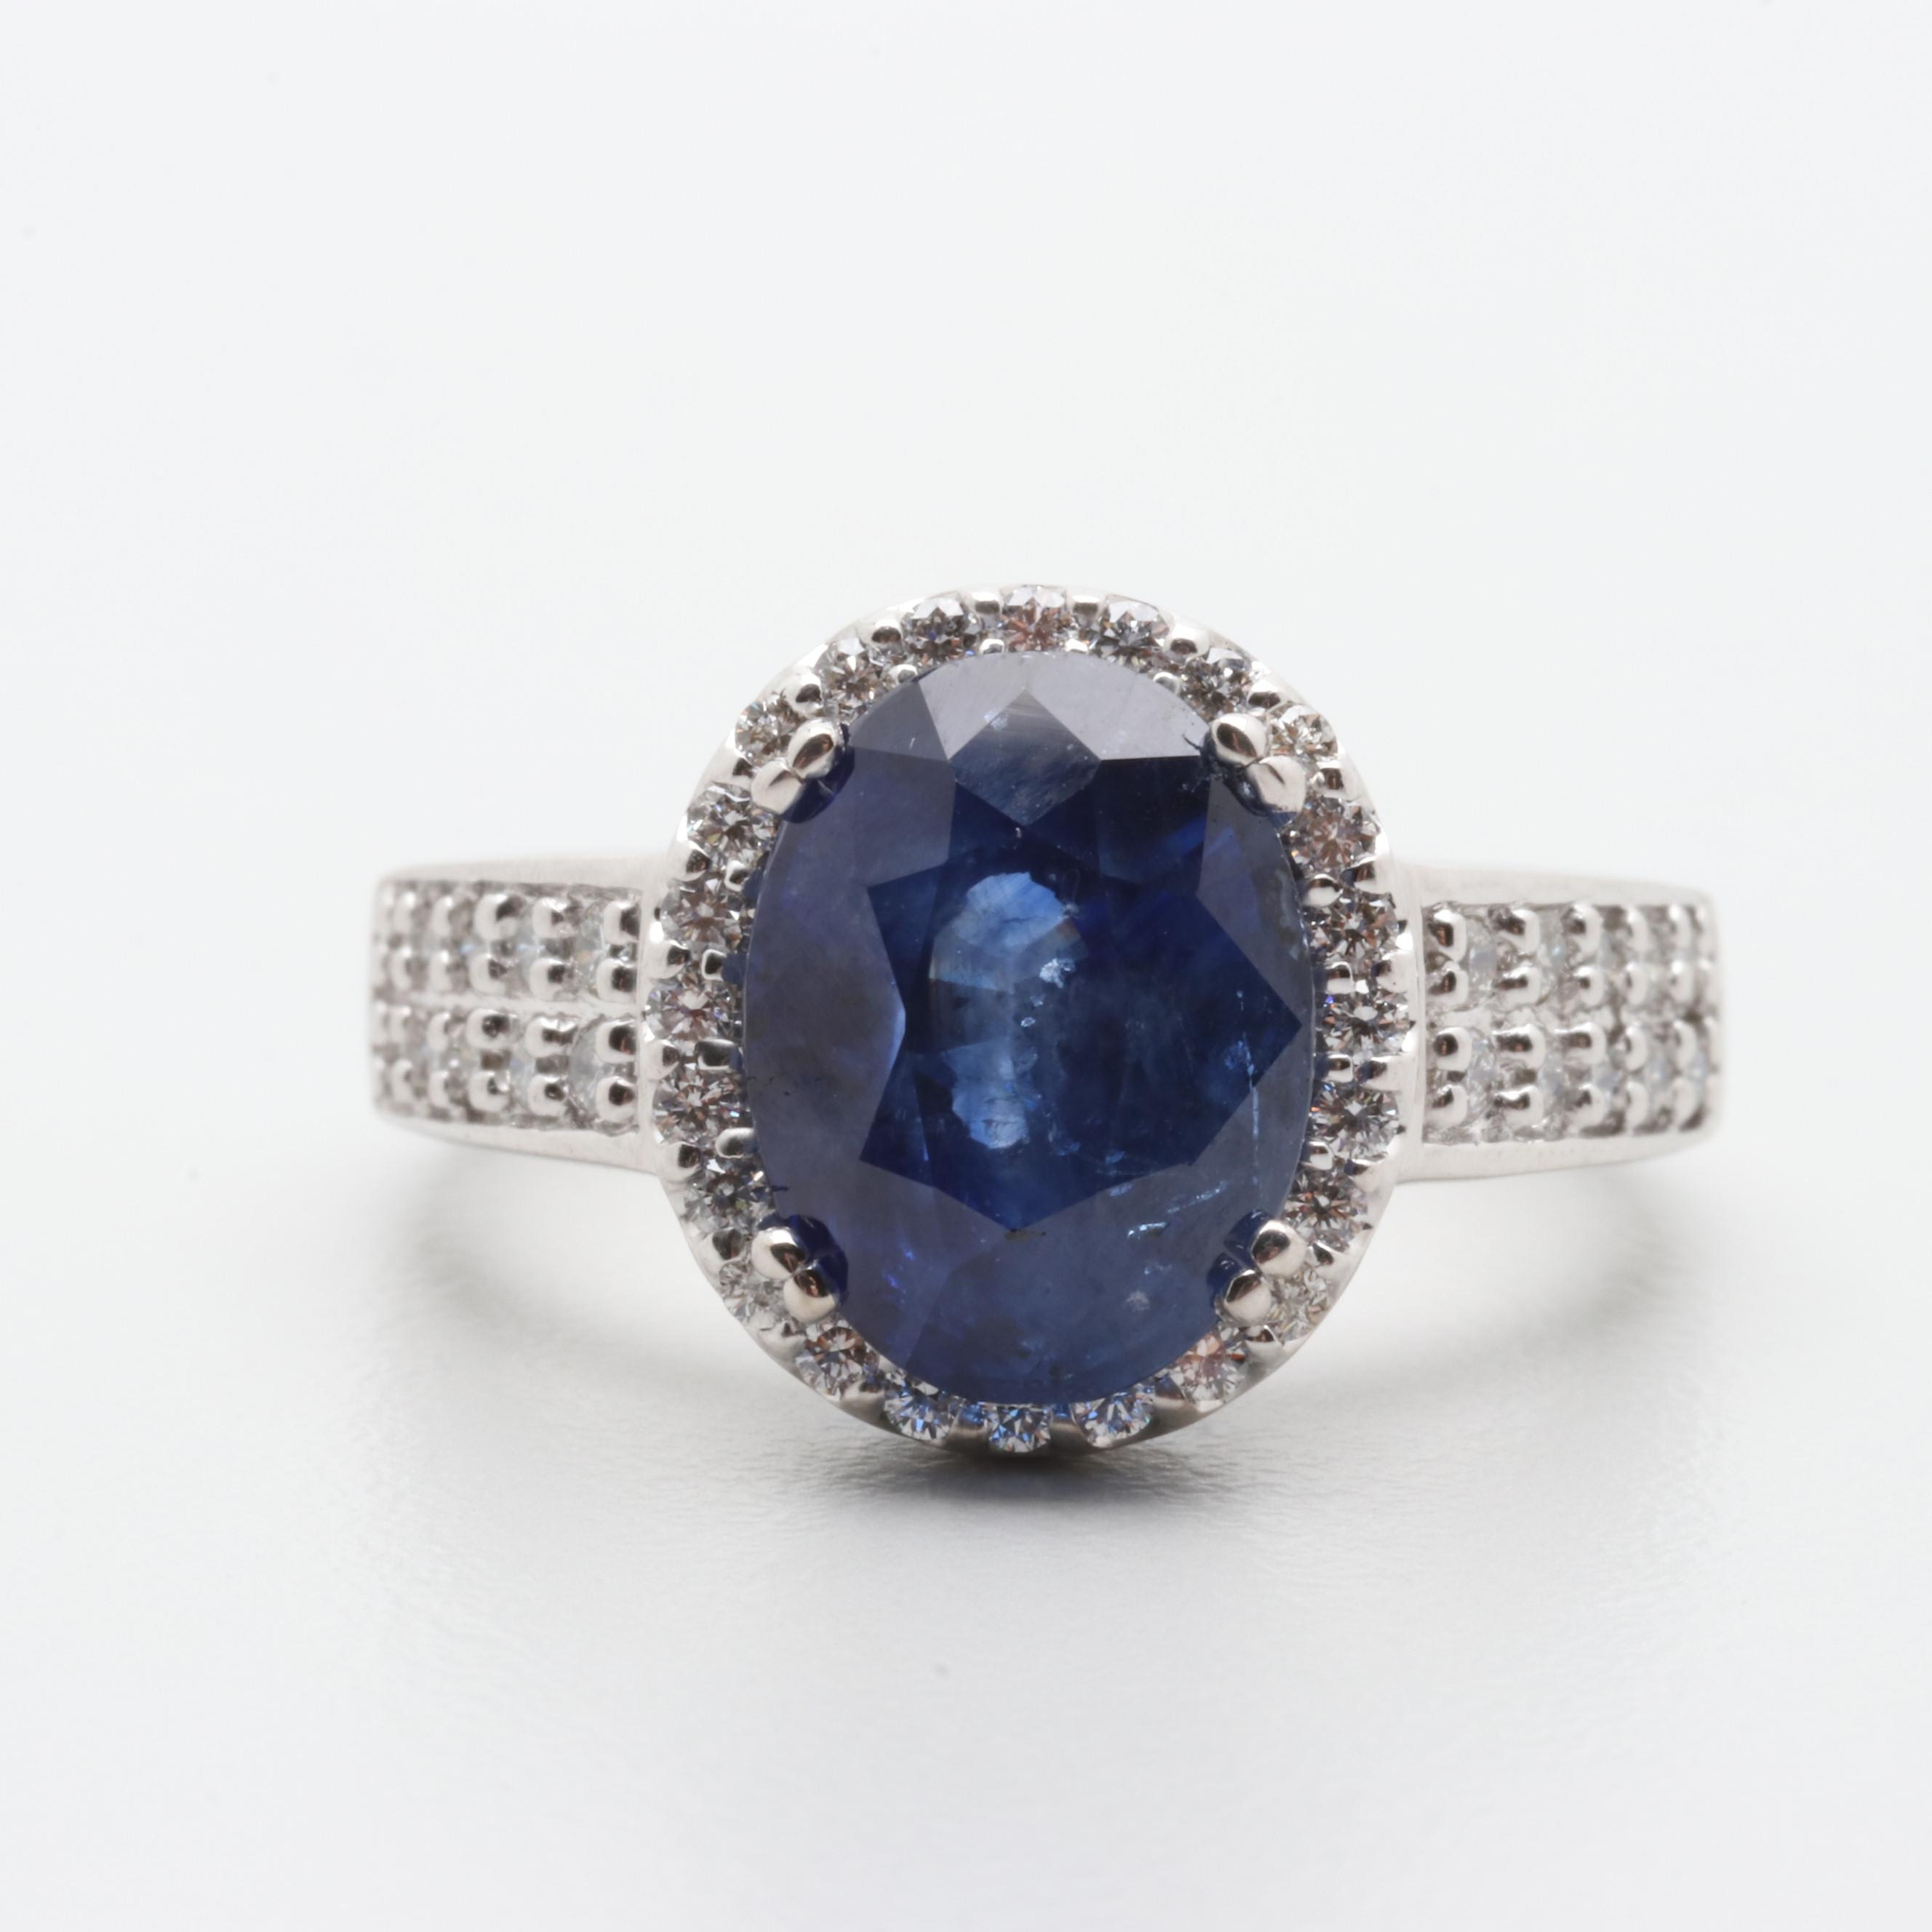 18K White Gold 5.88 CT Blue Sapphire and Diamond Ring with AGL Report